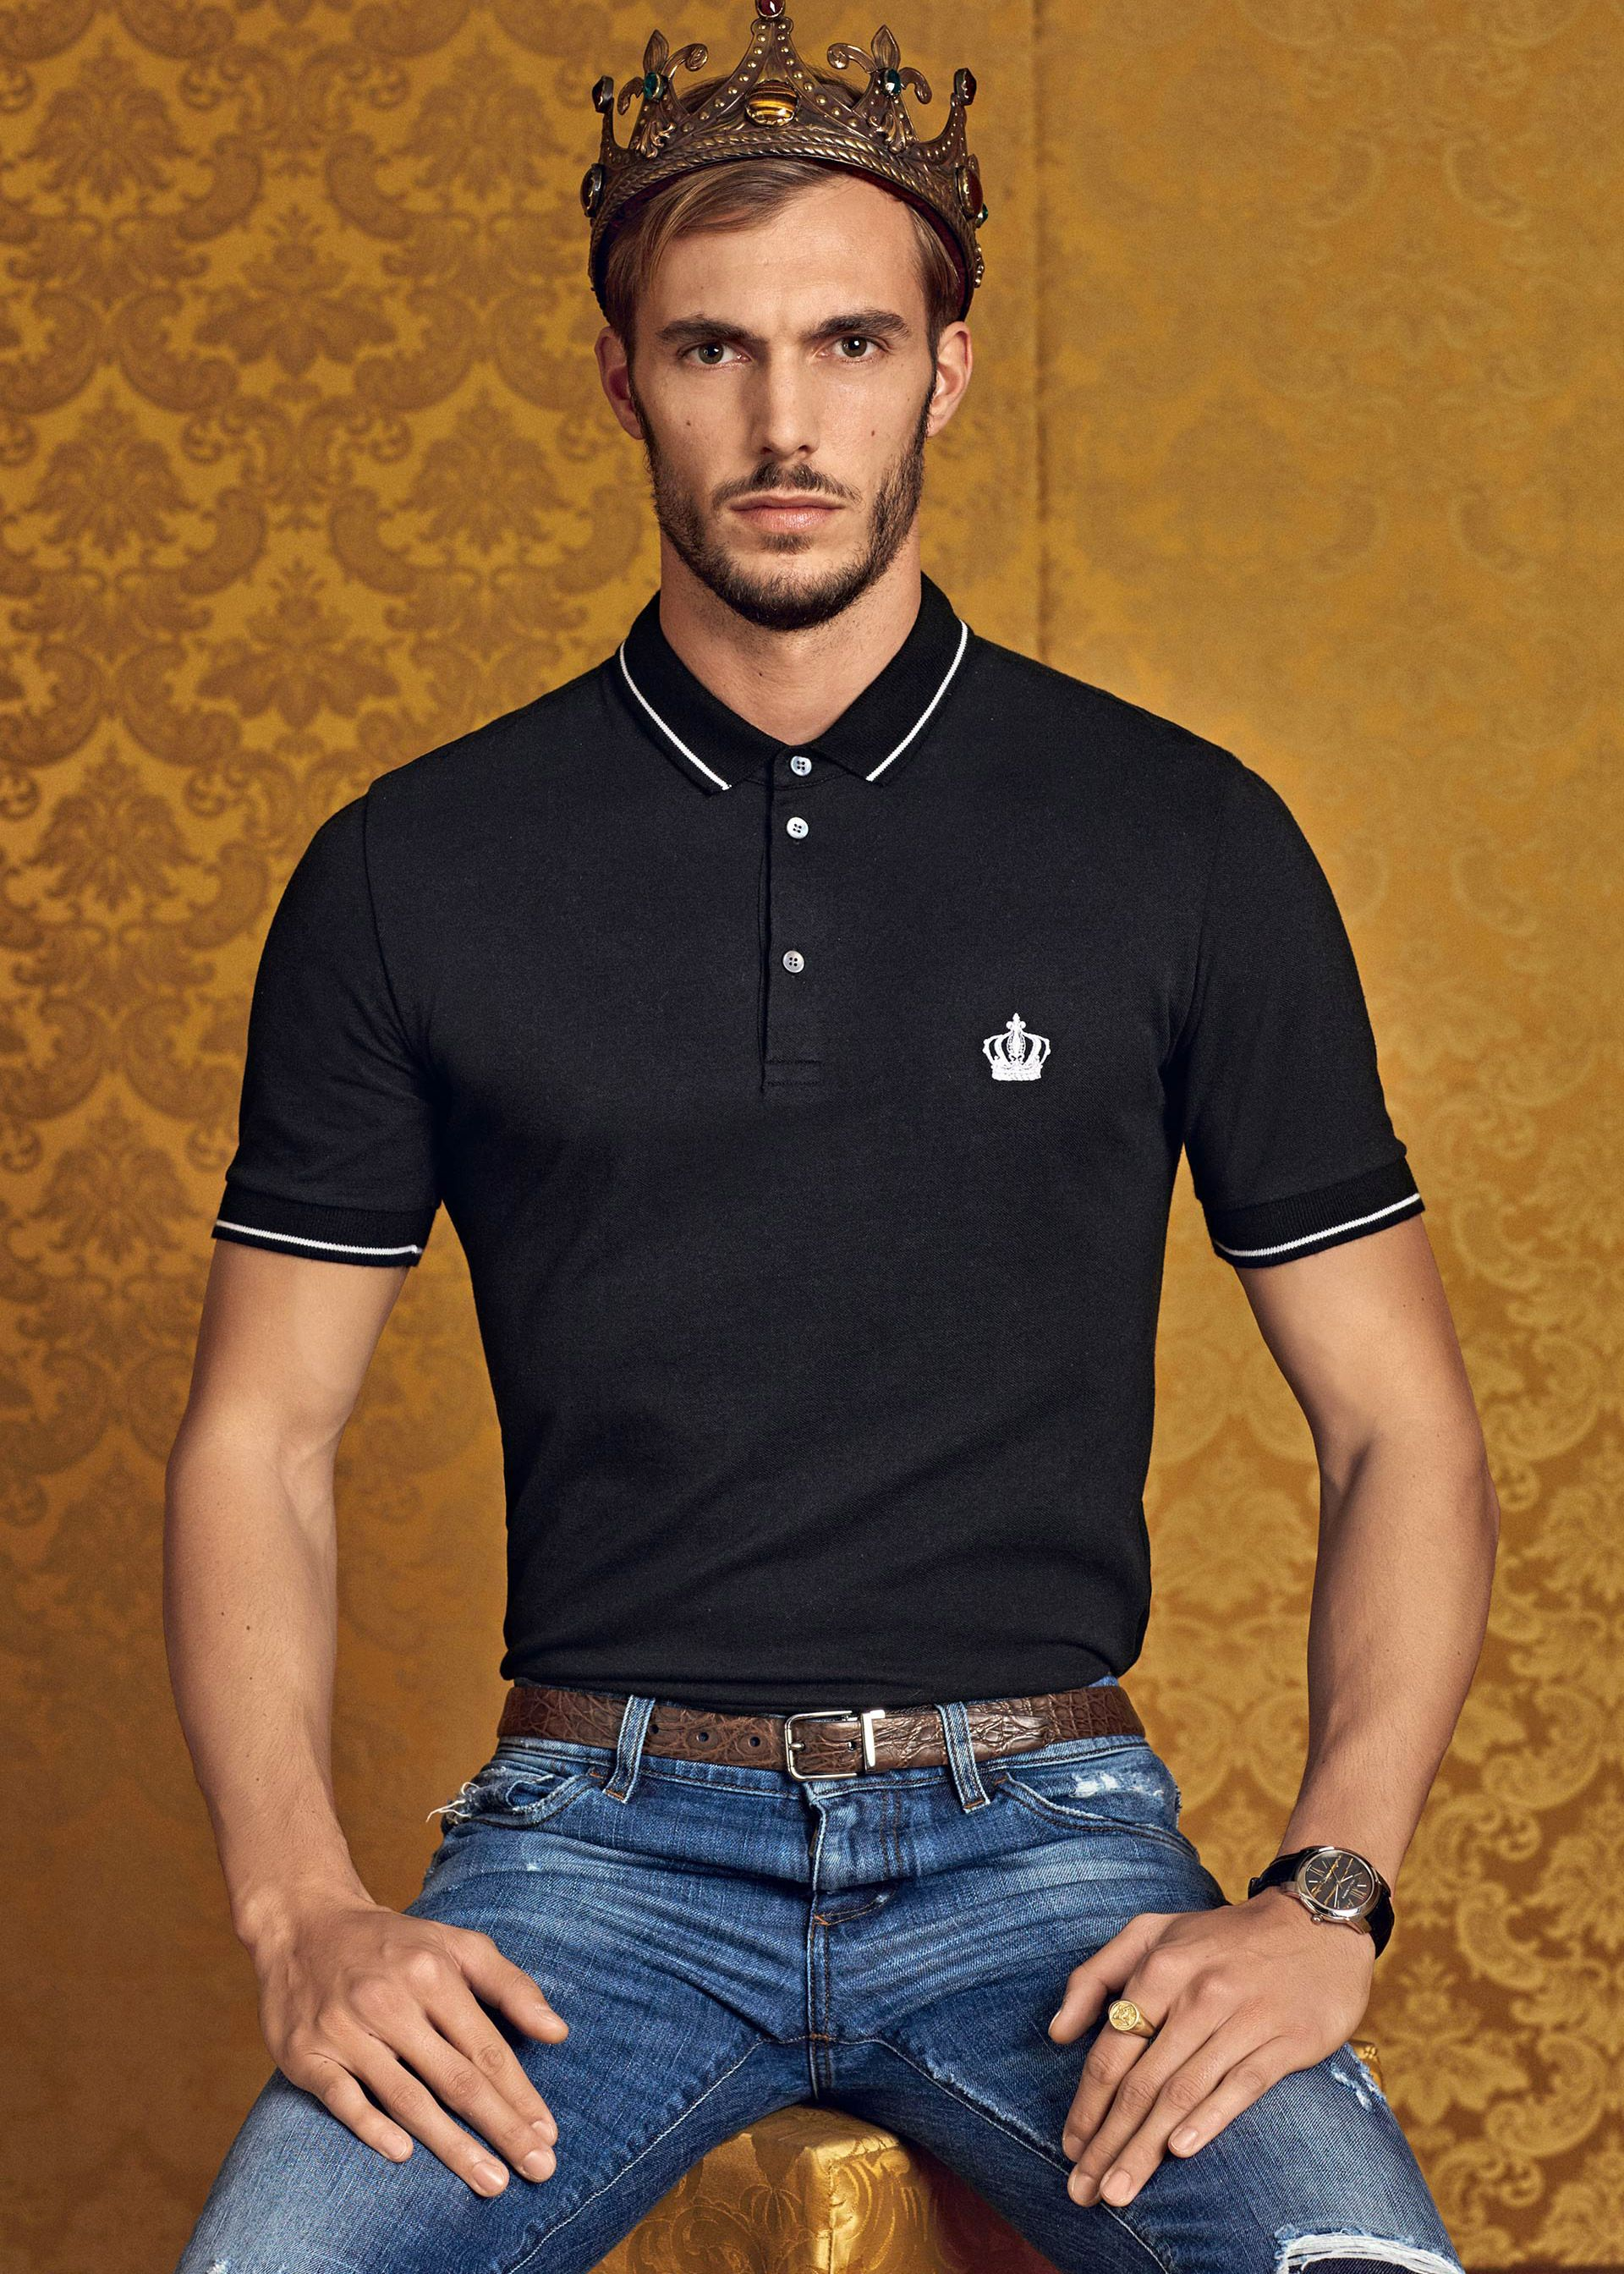 217faf06e Discover the new Dolce & Gabbana Men's Polo e Corona Collection for Fall  Winter 2016 2017 and get inspired.